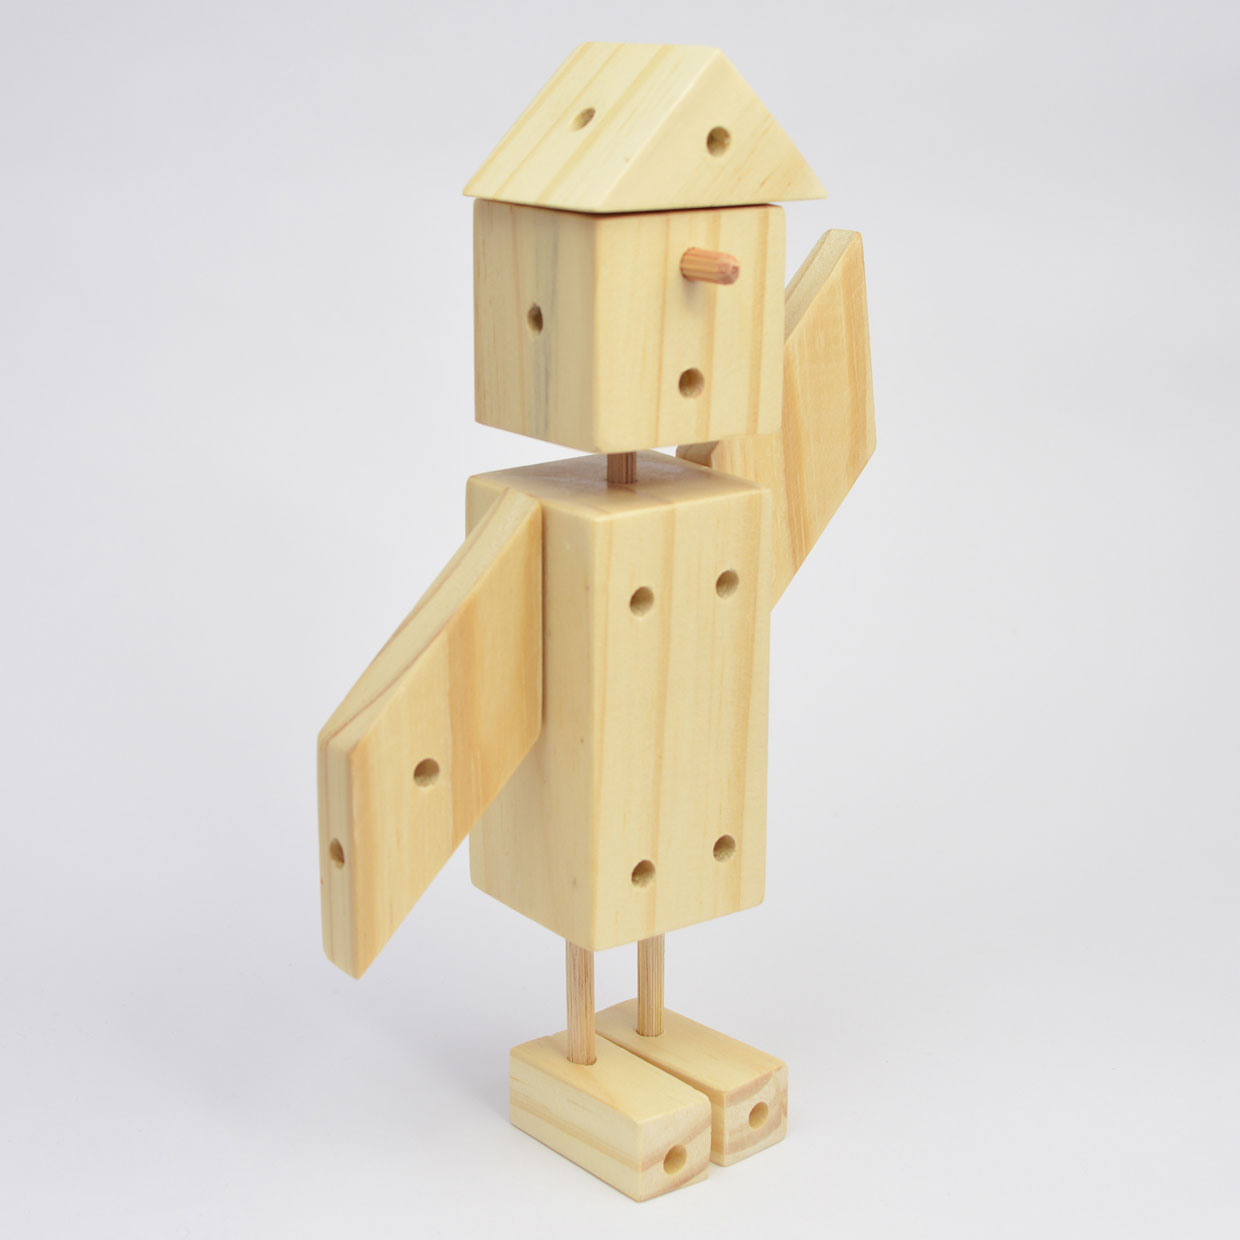 educational-wooden-toy-kit-tangram-by-bruna-kim-1